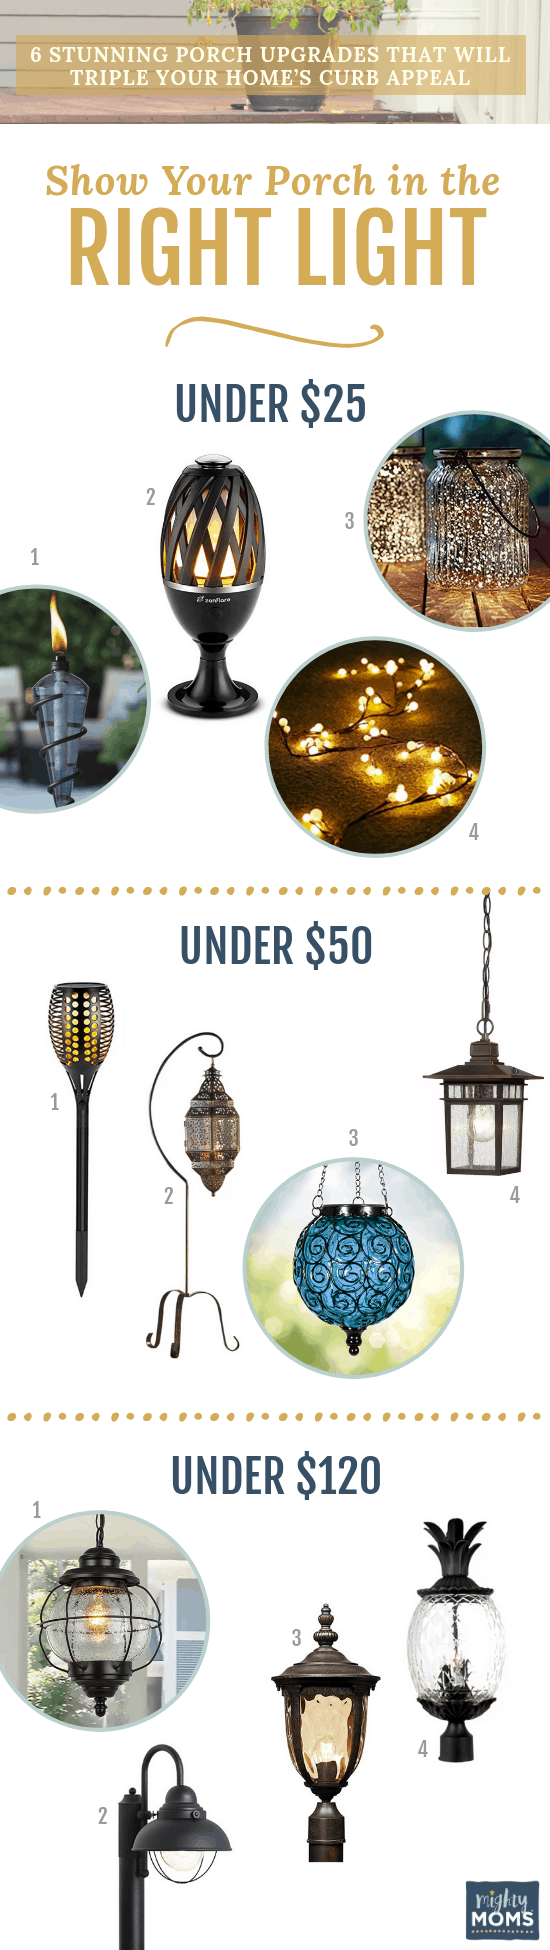 Increase Your Curb Appeal with Lighting - MightyMoms.club